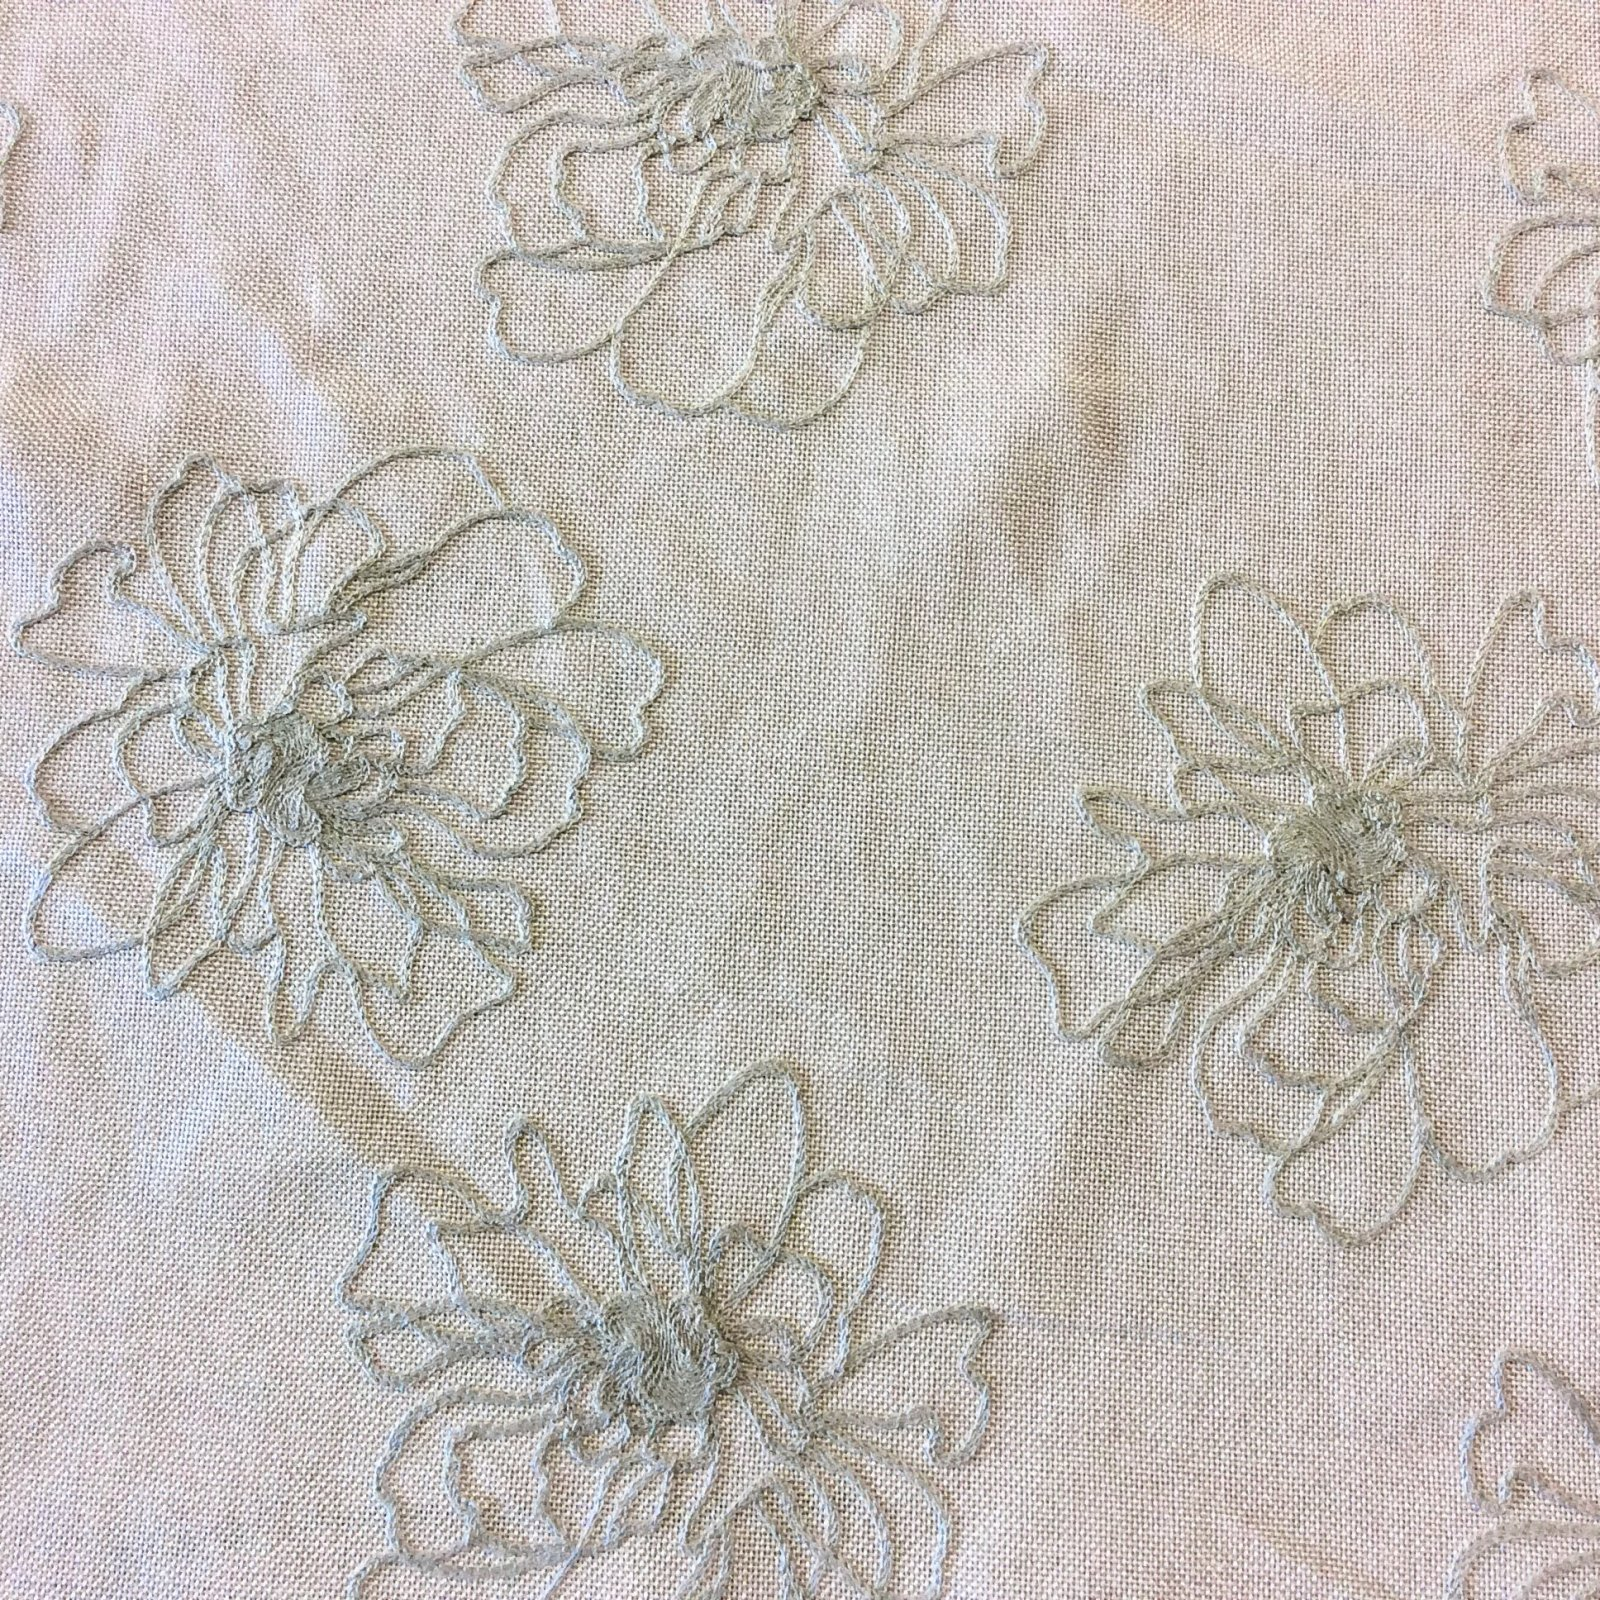 Nl221 Fl Embroidered Semi Sheer Light Weight Drapery Home Decor Fabric